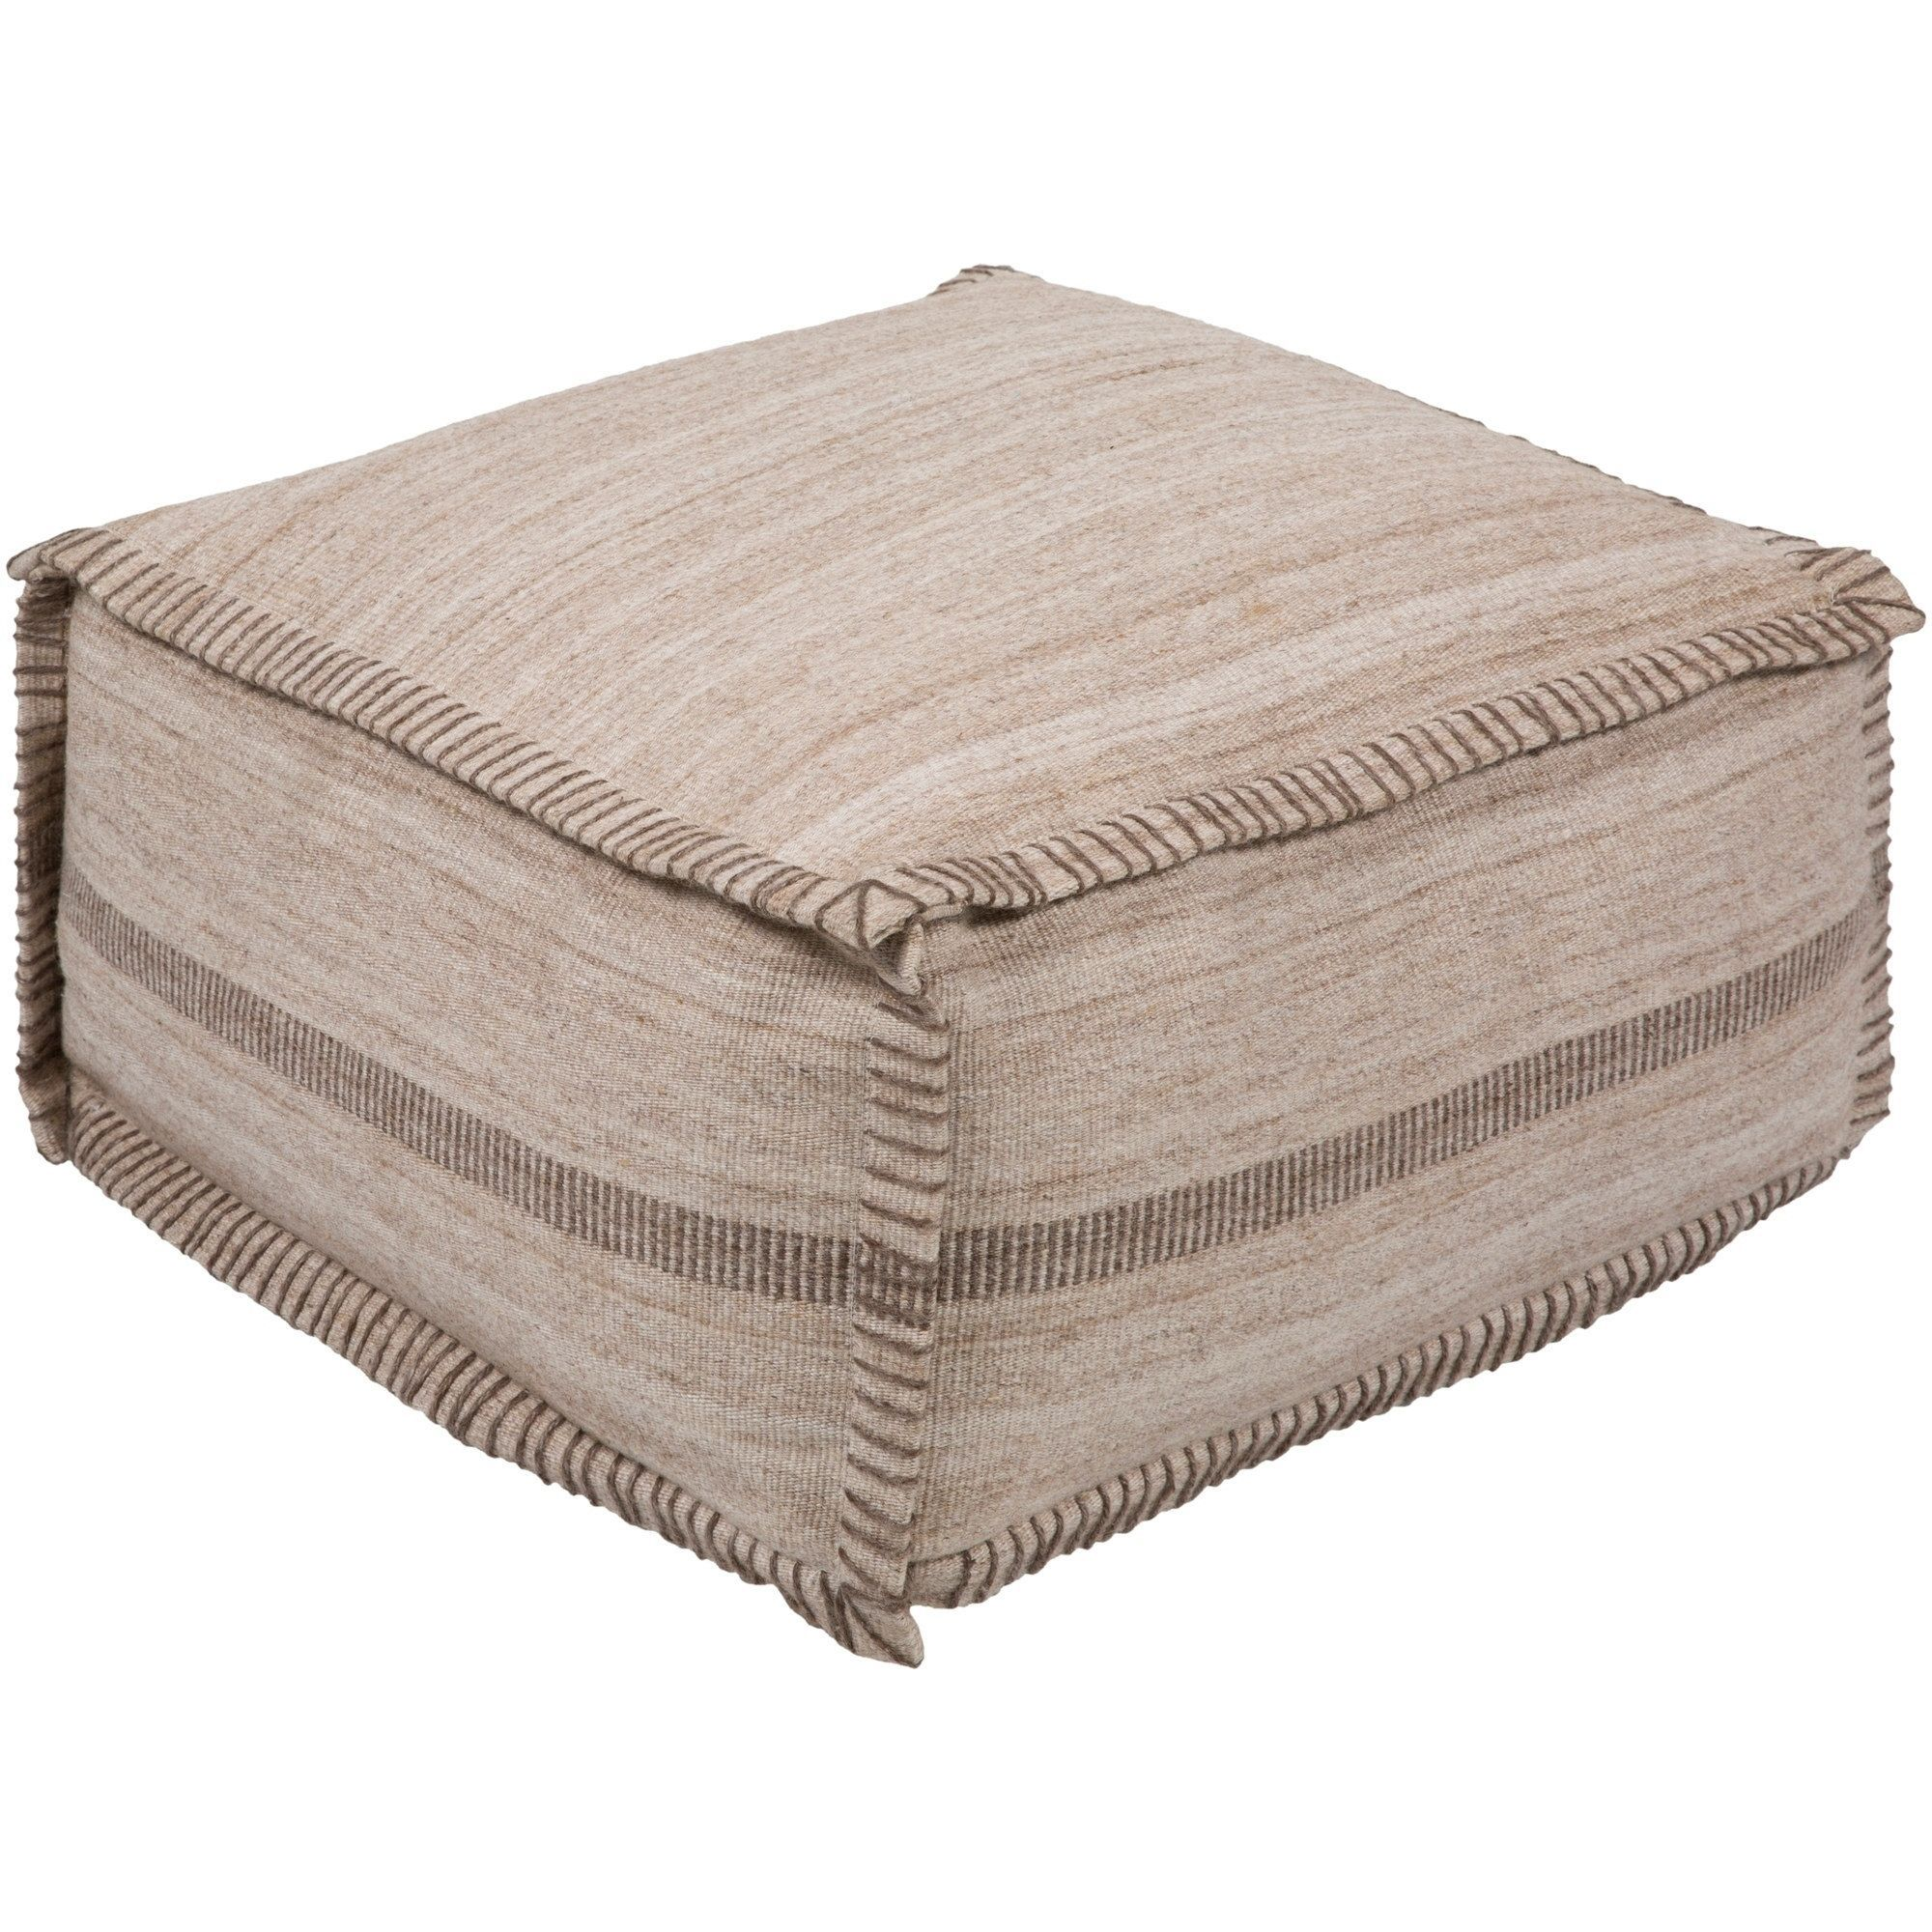 White Pouf Ottoman Interesting Camellia Traditional Textured Ivory 13 Pouf Beige Offwhite Size Design Inspiration